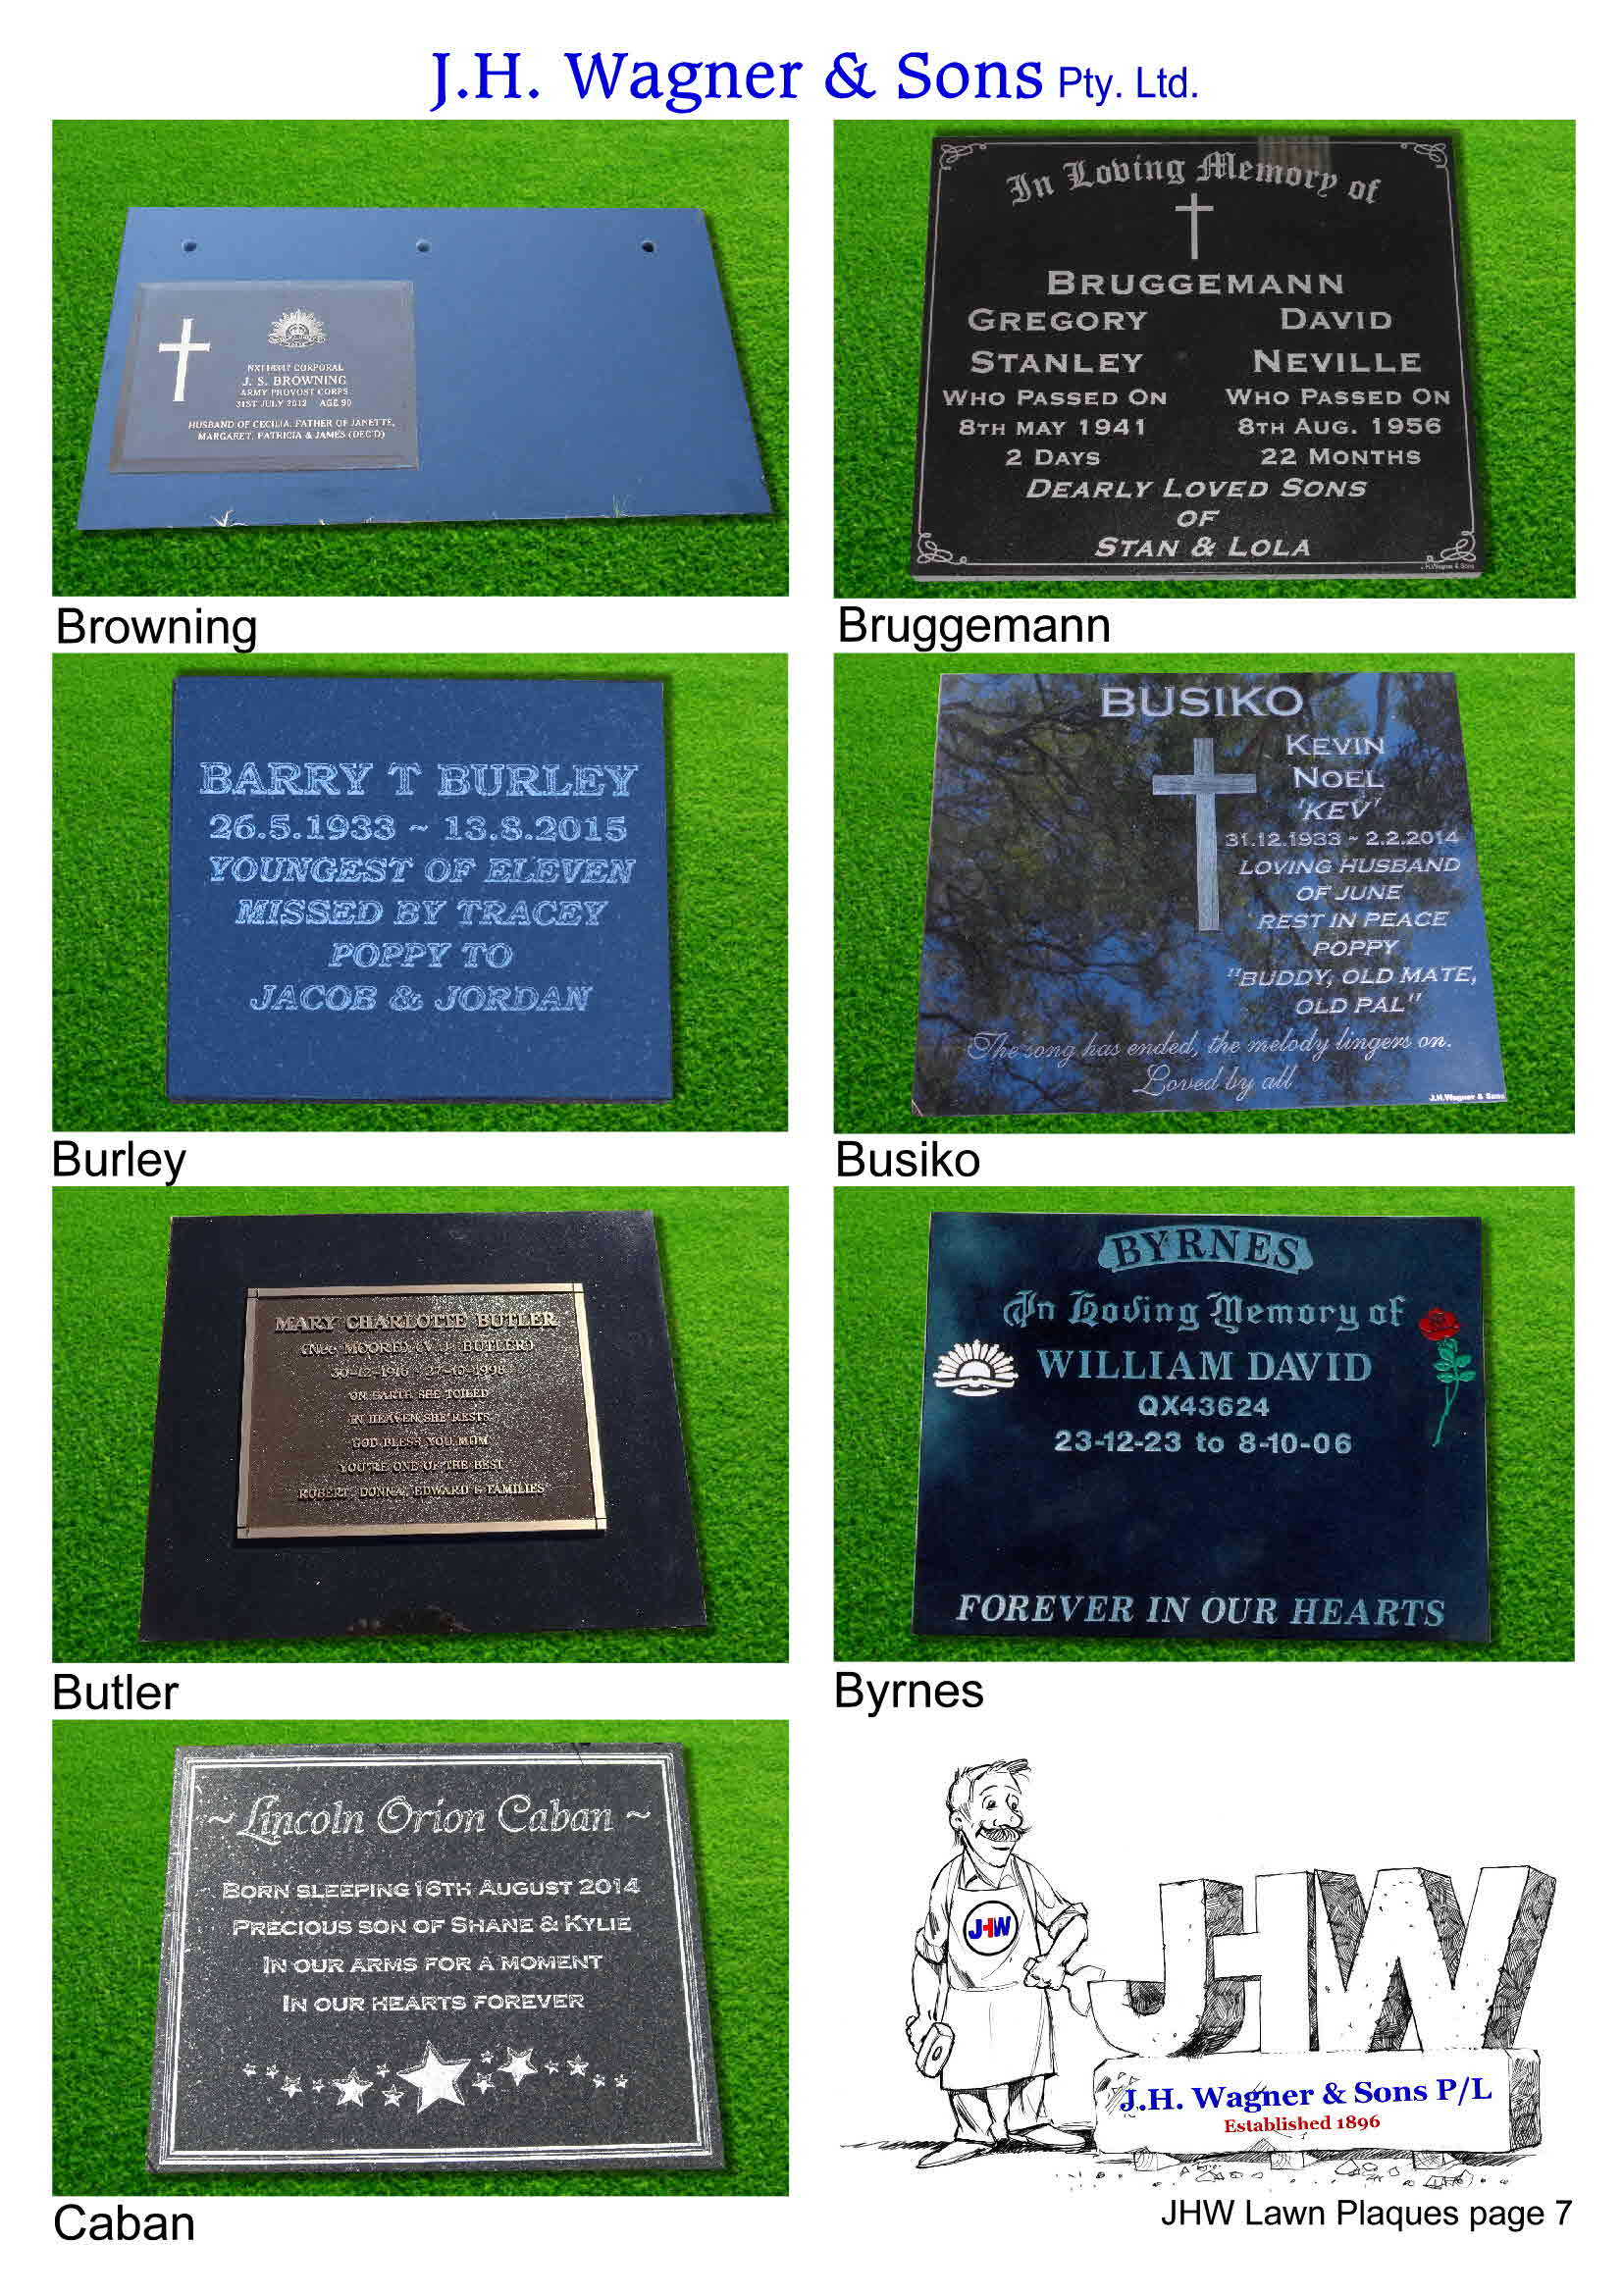 Remembrance Plaques from J.H. Wagner & Sons Page 7